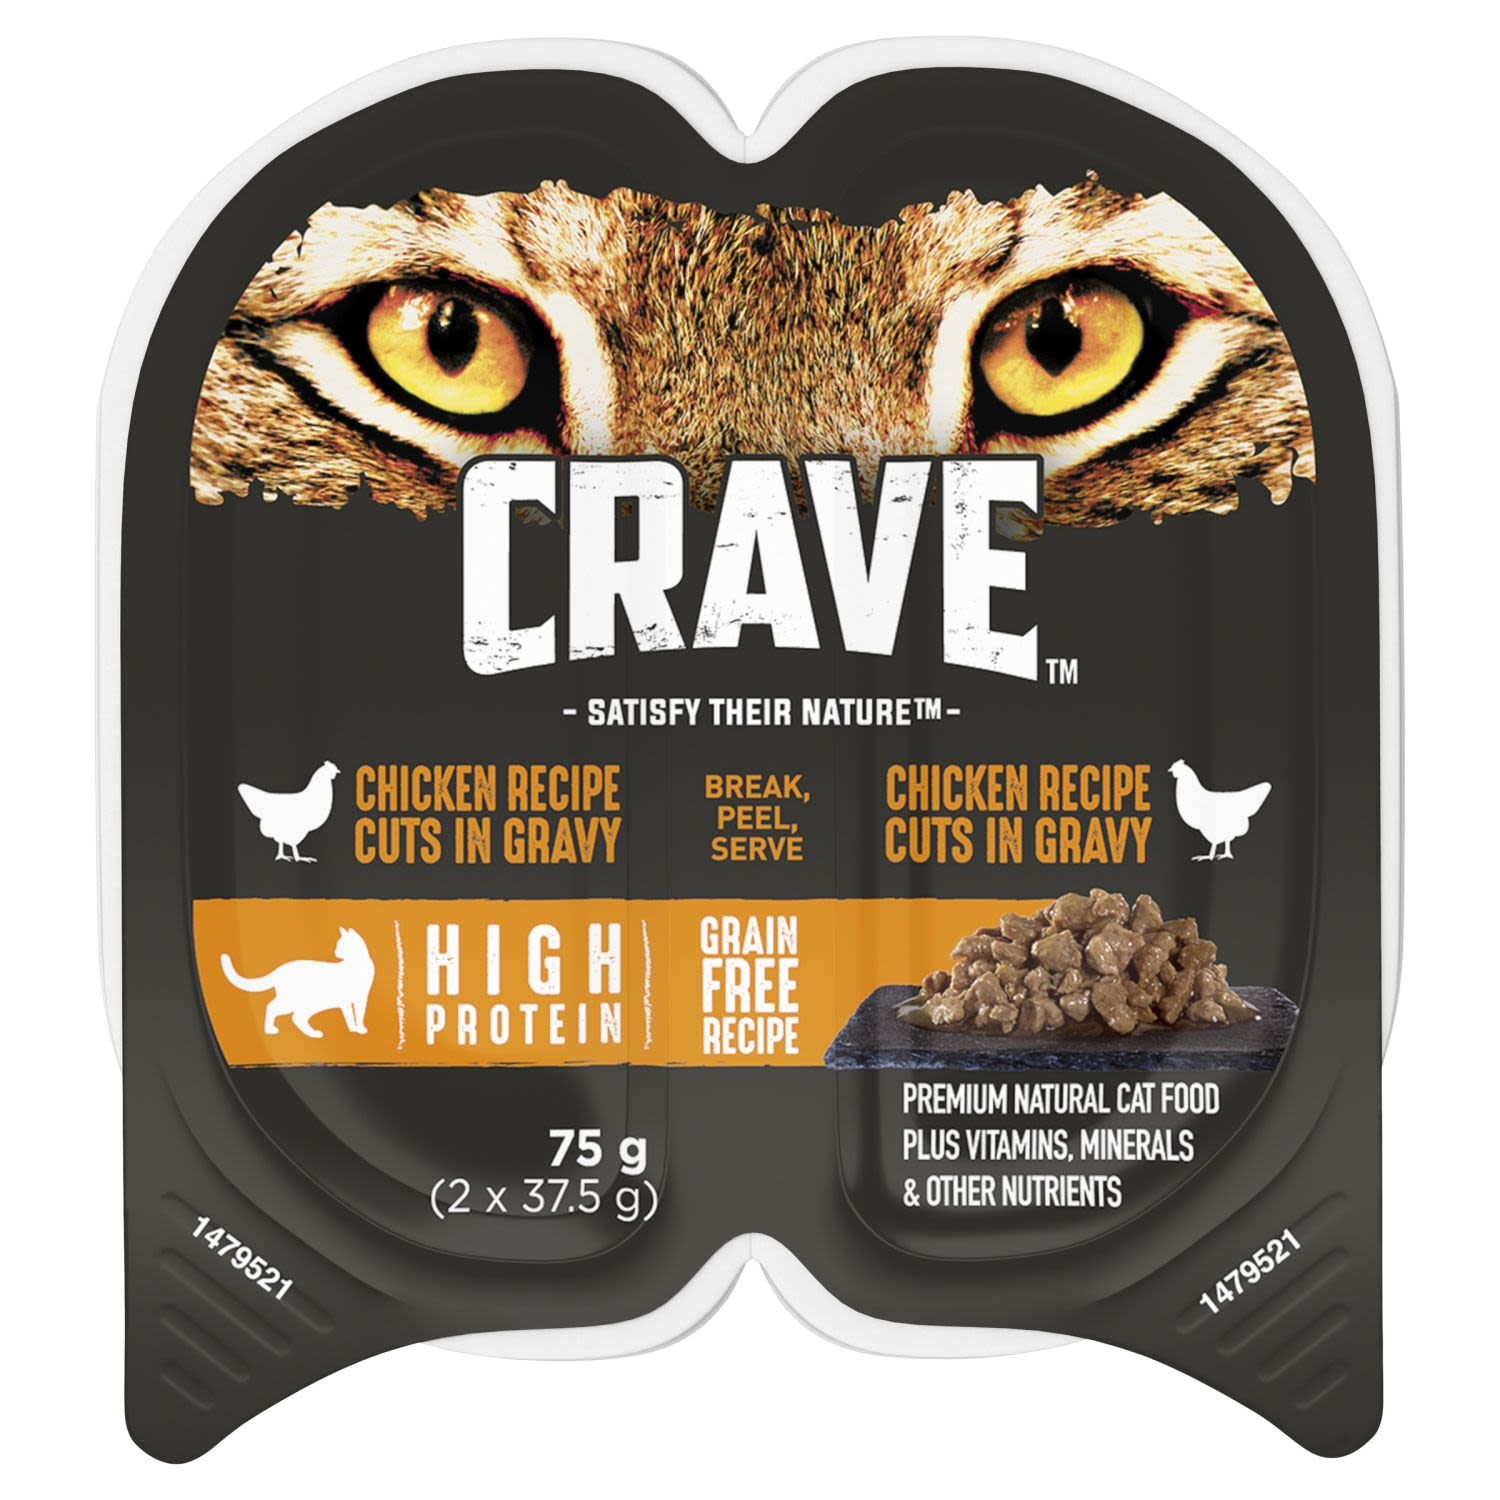 Crave Wet Cat Food Chicken Cuts in Gravy Tray, 2 Each